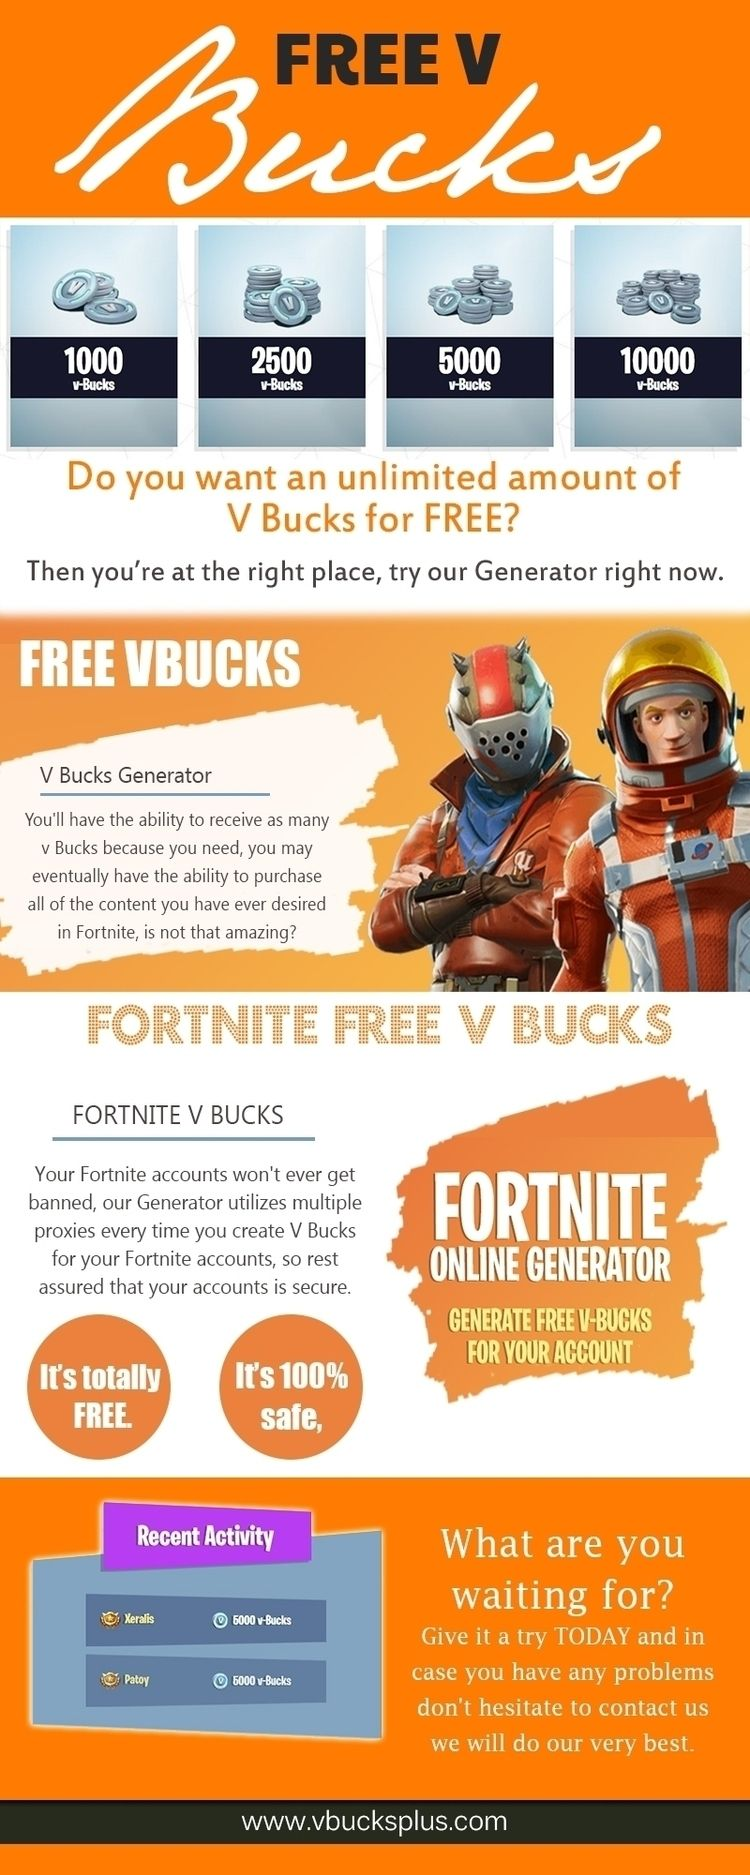 Freevbucks Co fortnite free v bucks (@fortnitefreevbucks) | ello